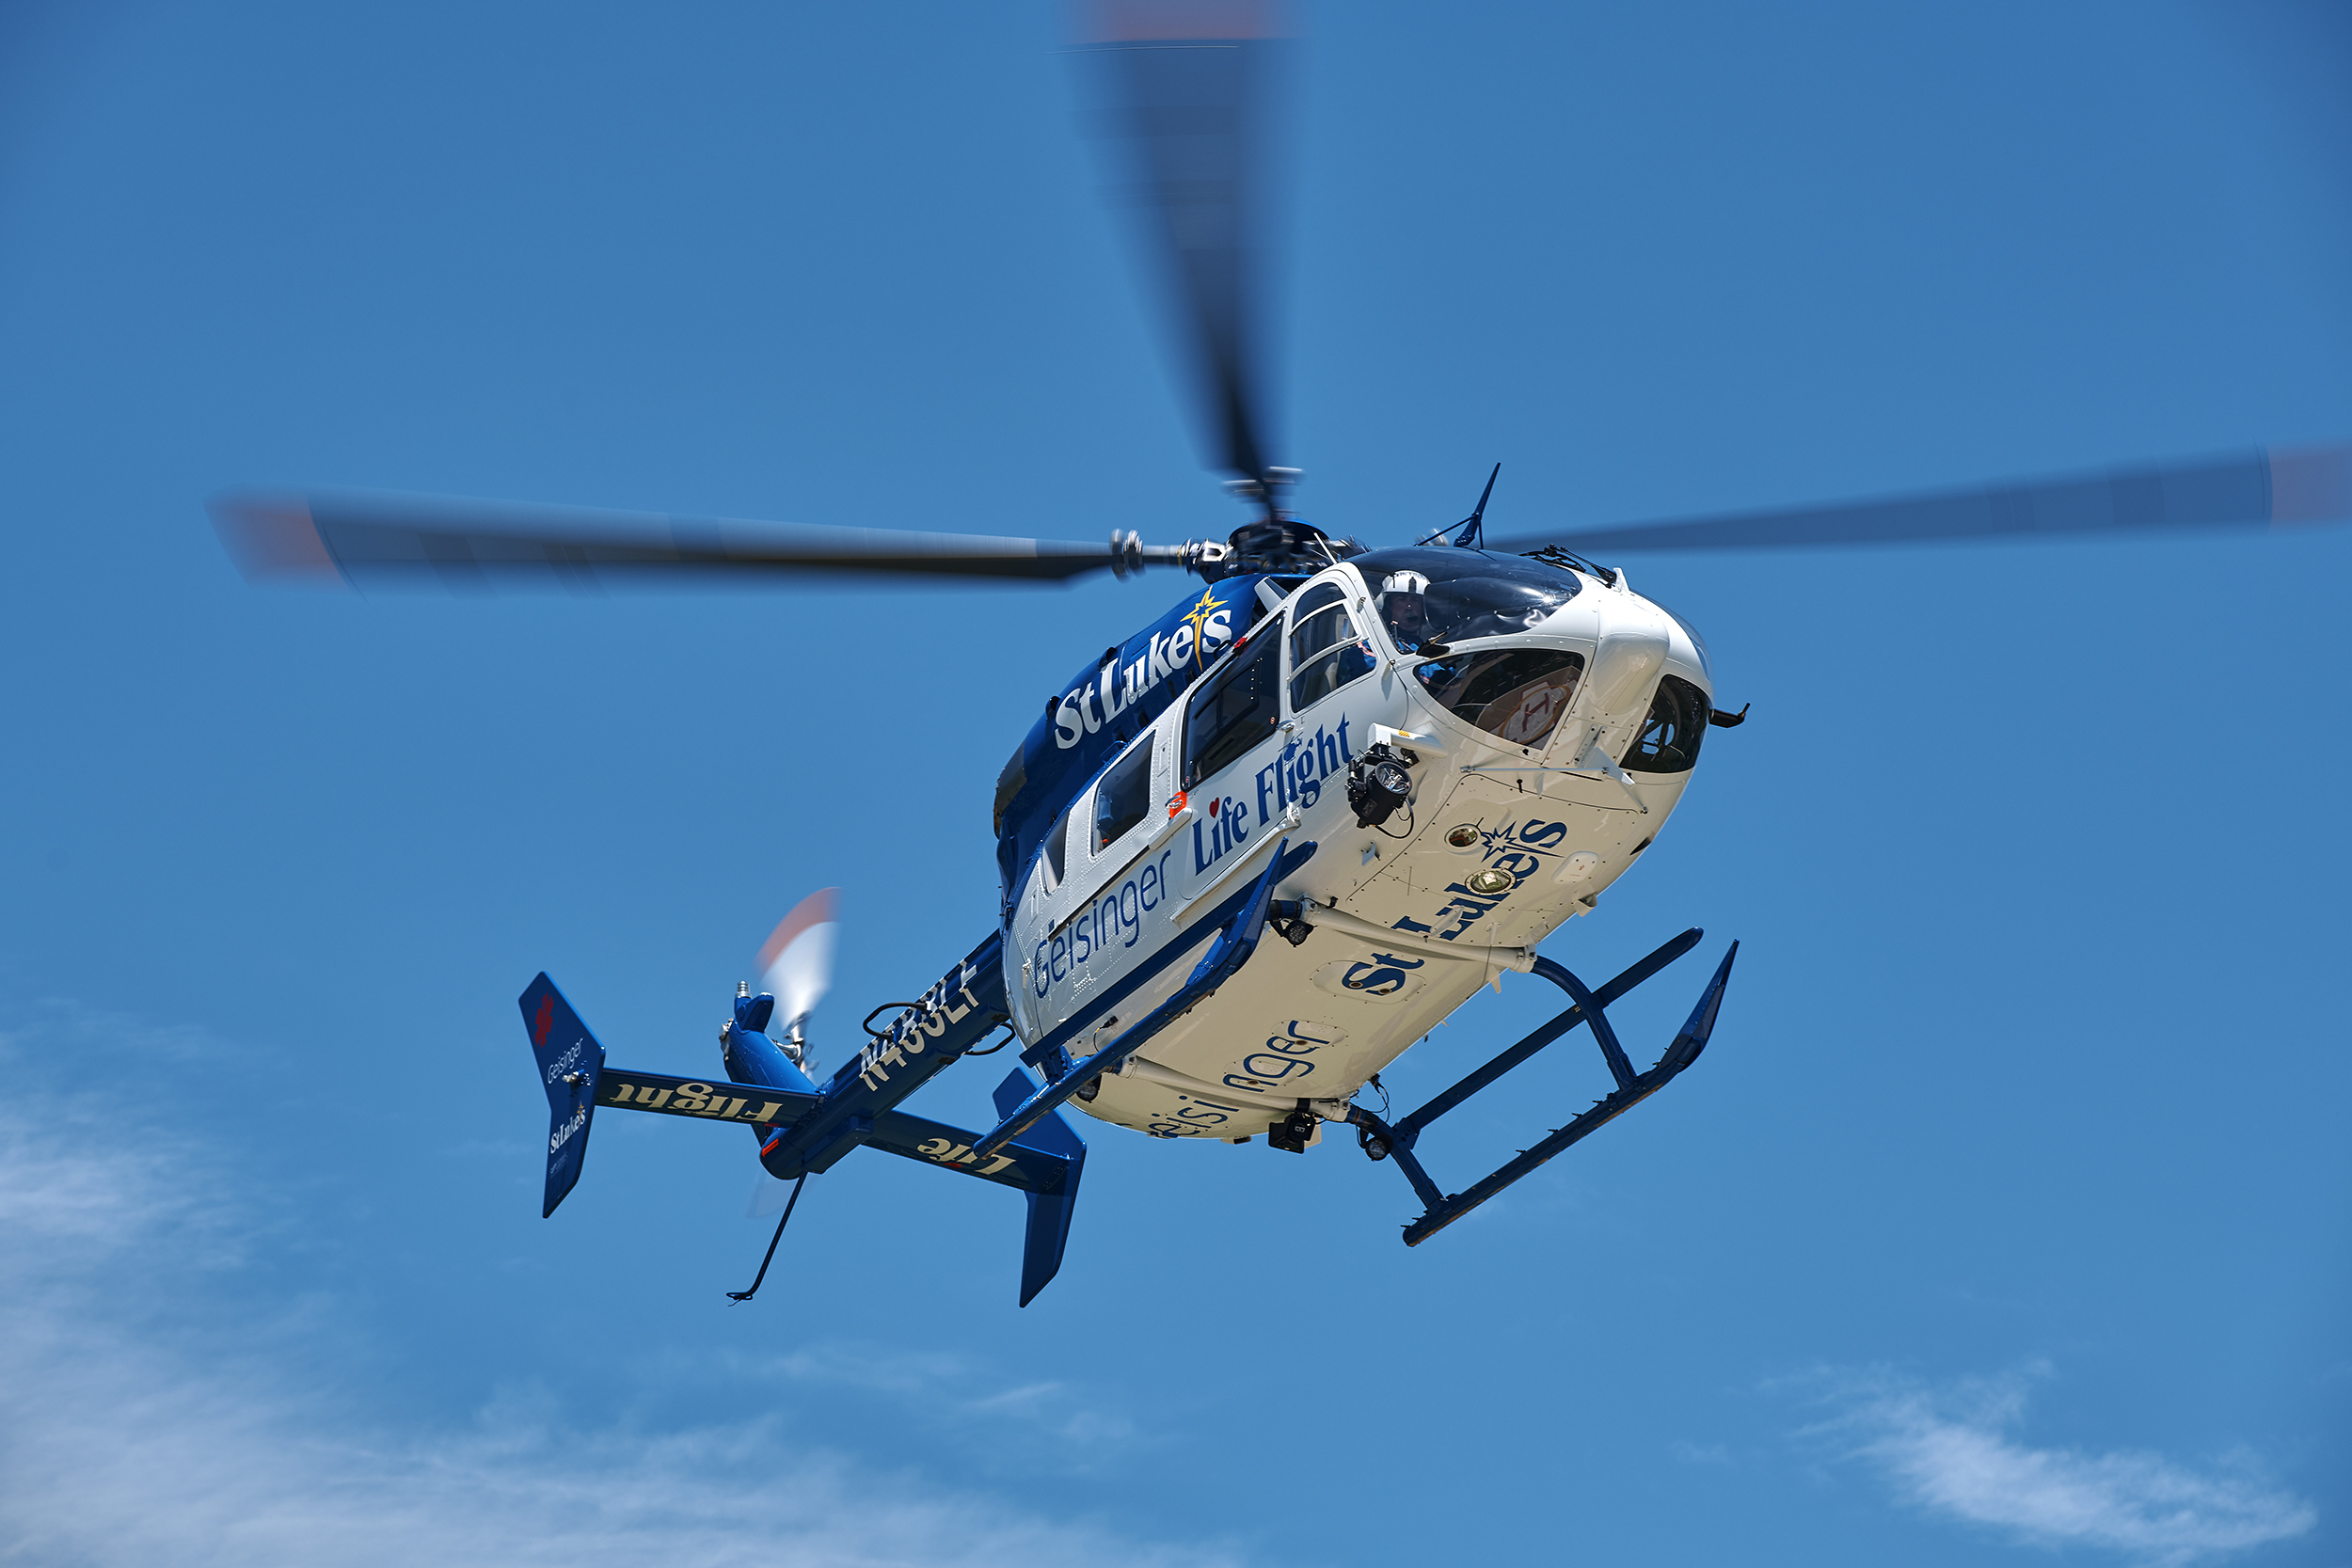 Geisinger Life Flight - Eurocopter EC145 Helicopter Preparing for Landing